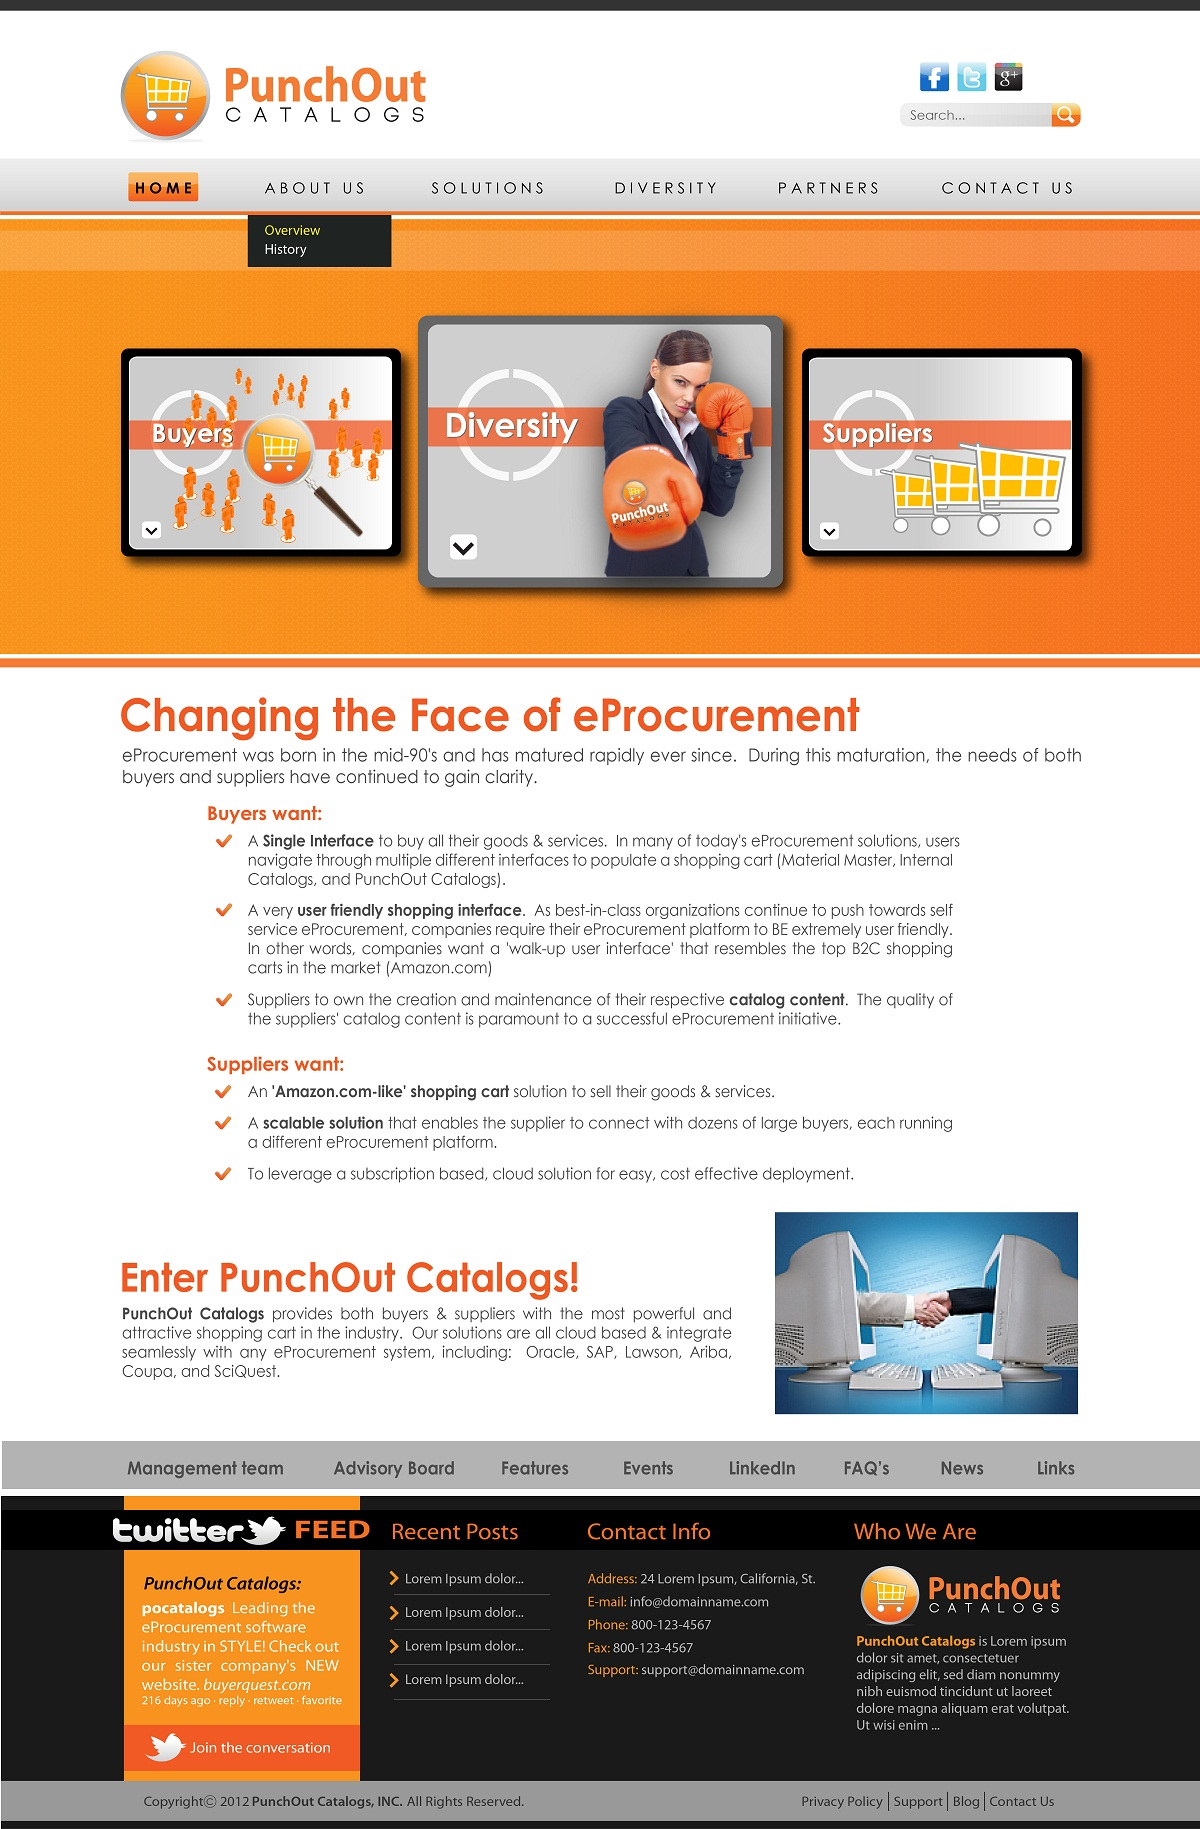 Web Page Design by kowreck - Entry No. 31 in the Web Page Design Contest Web Page Design Needed for Exciting New Company PunchOut Catalogs.